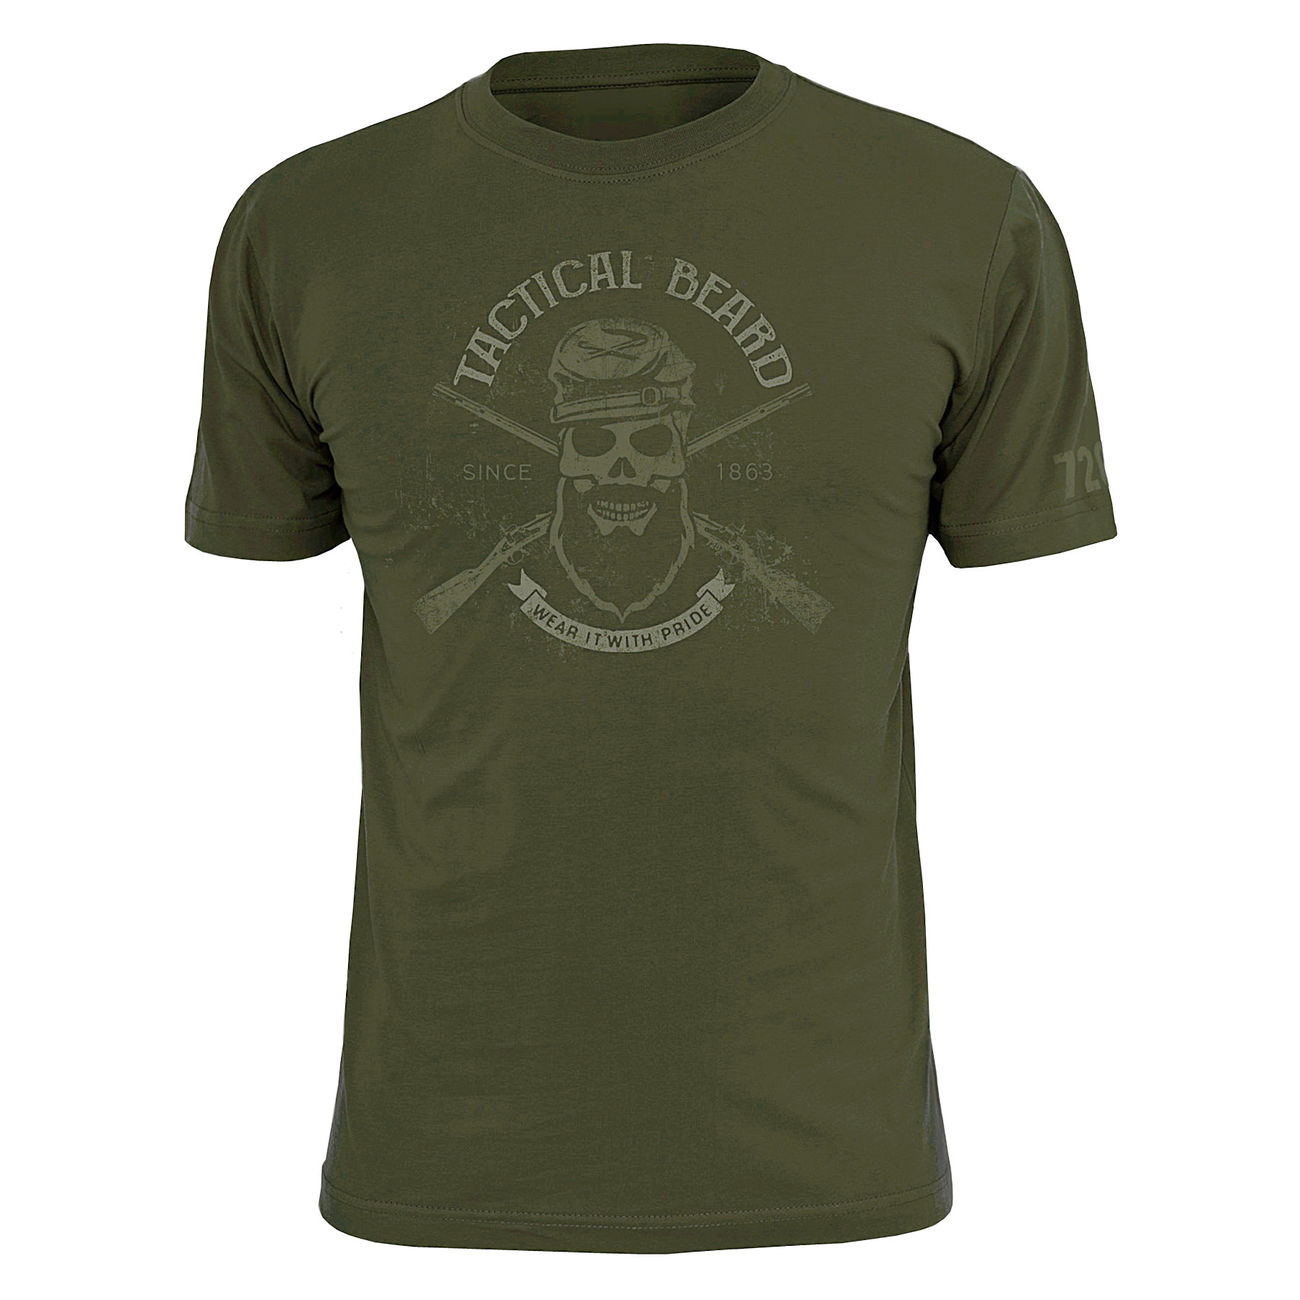 720gear T-Shirt Tactical Beard 0